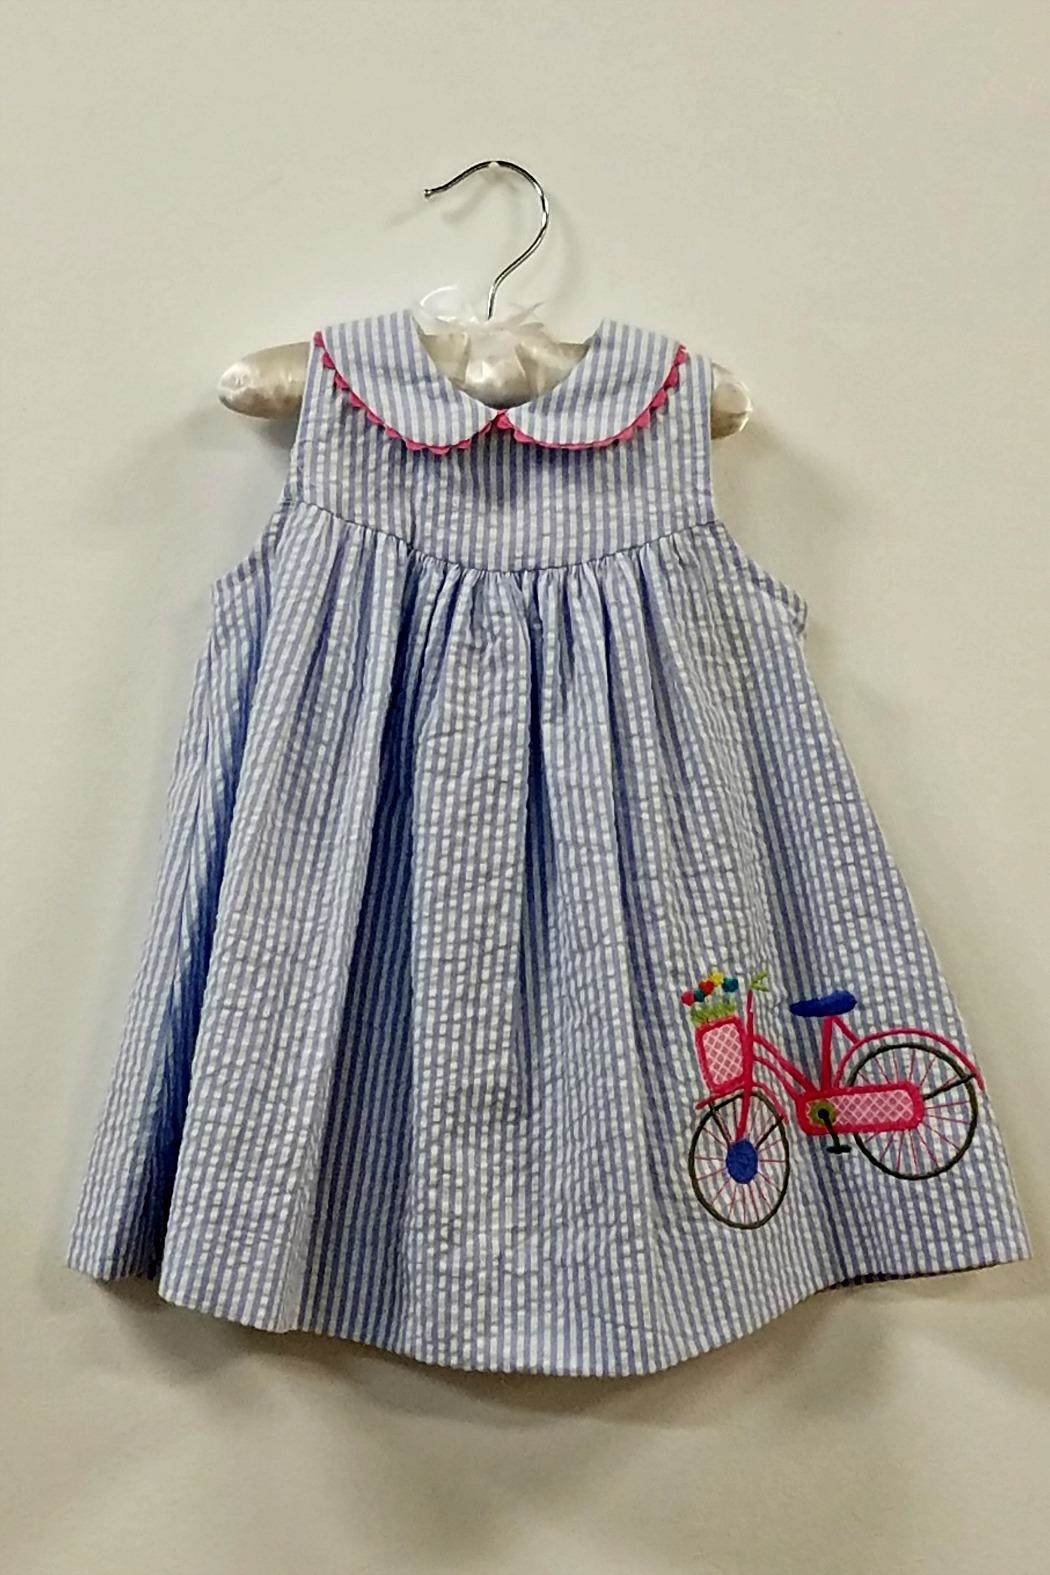 Bailey Boys Girls Bicycle Dress From South Carolina By The